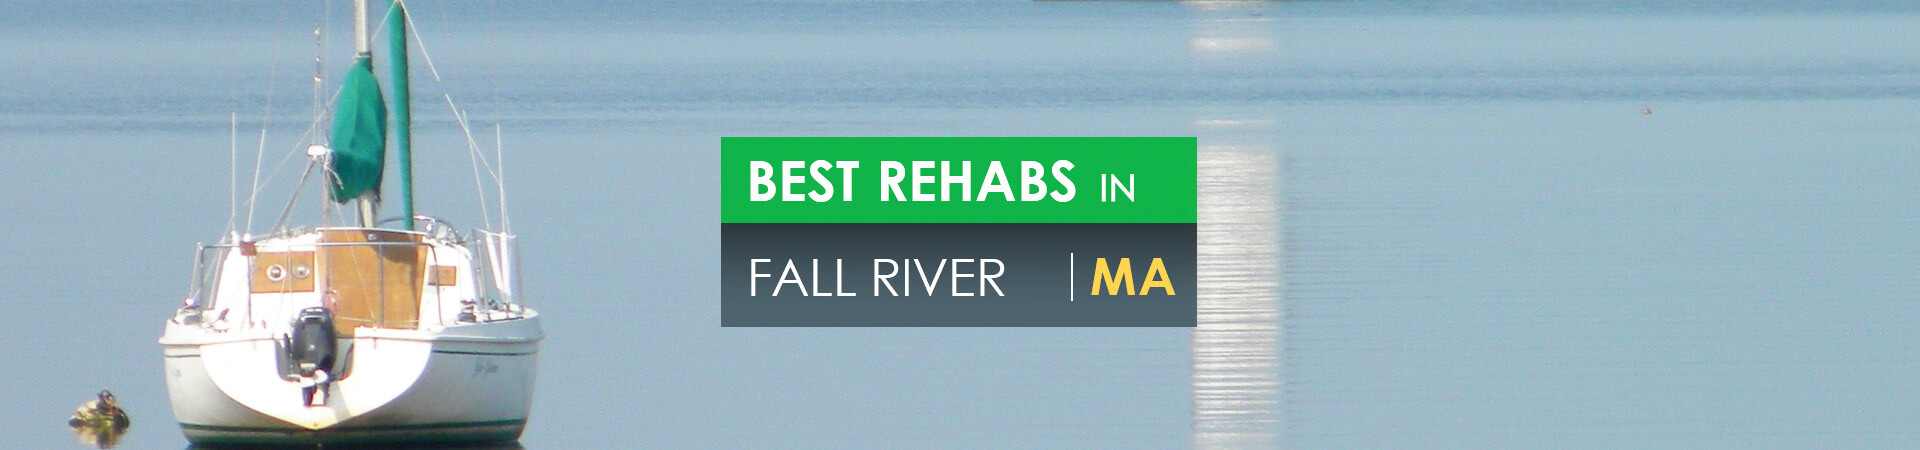 Best rehabs in Fall River, MA